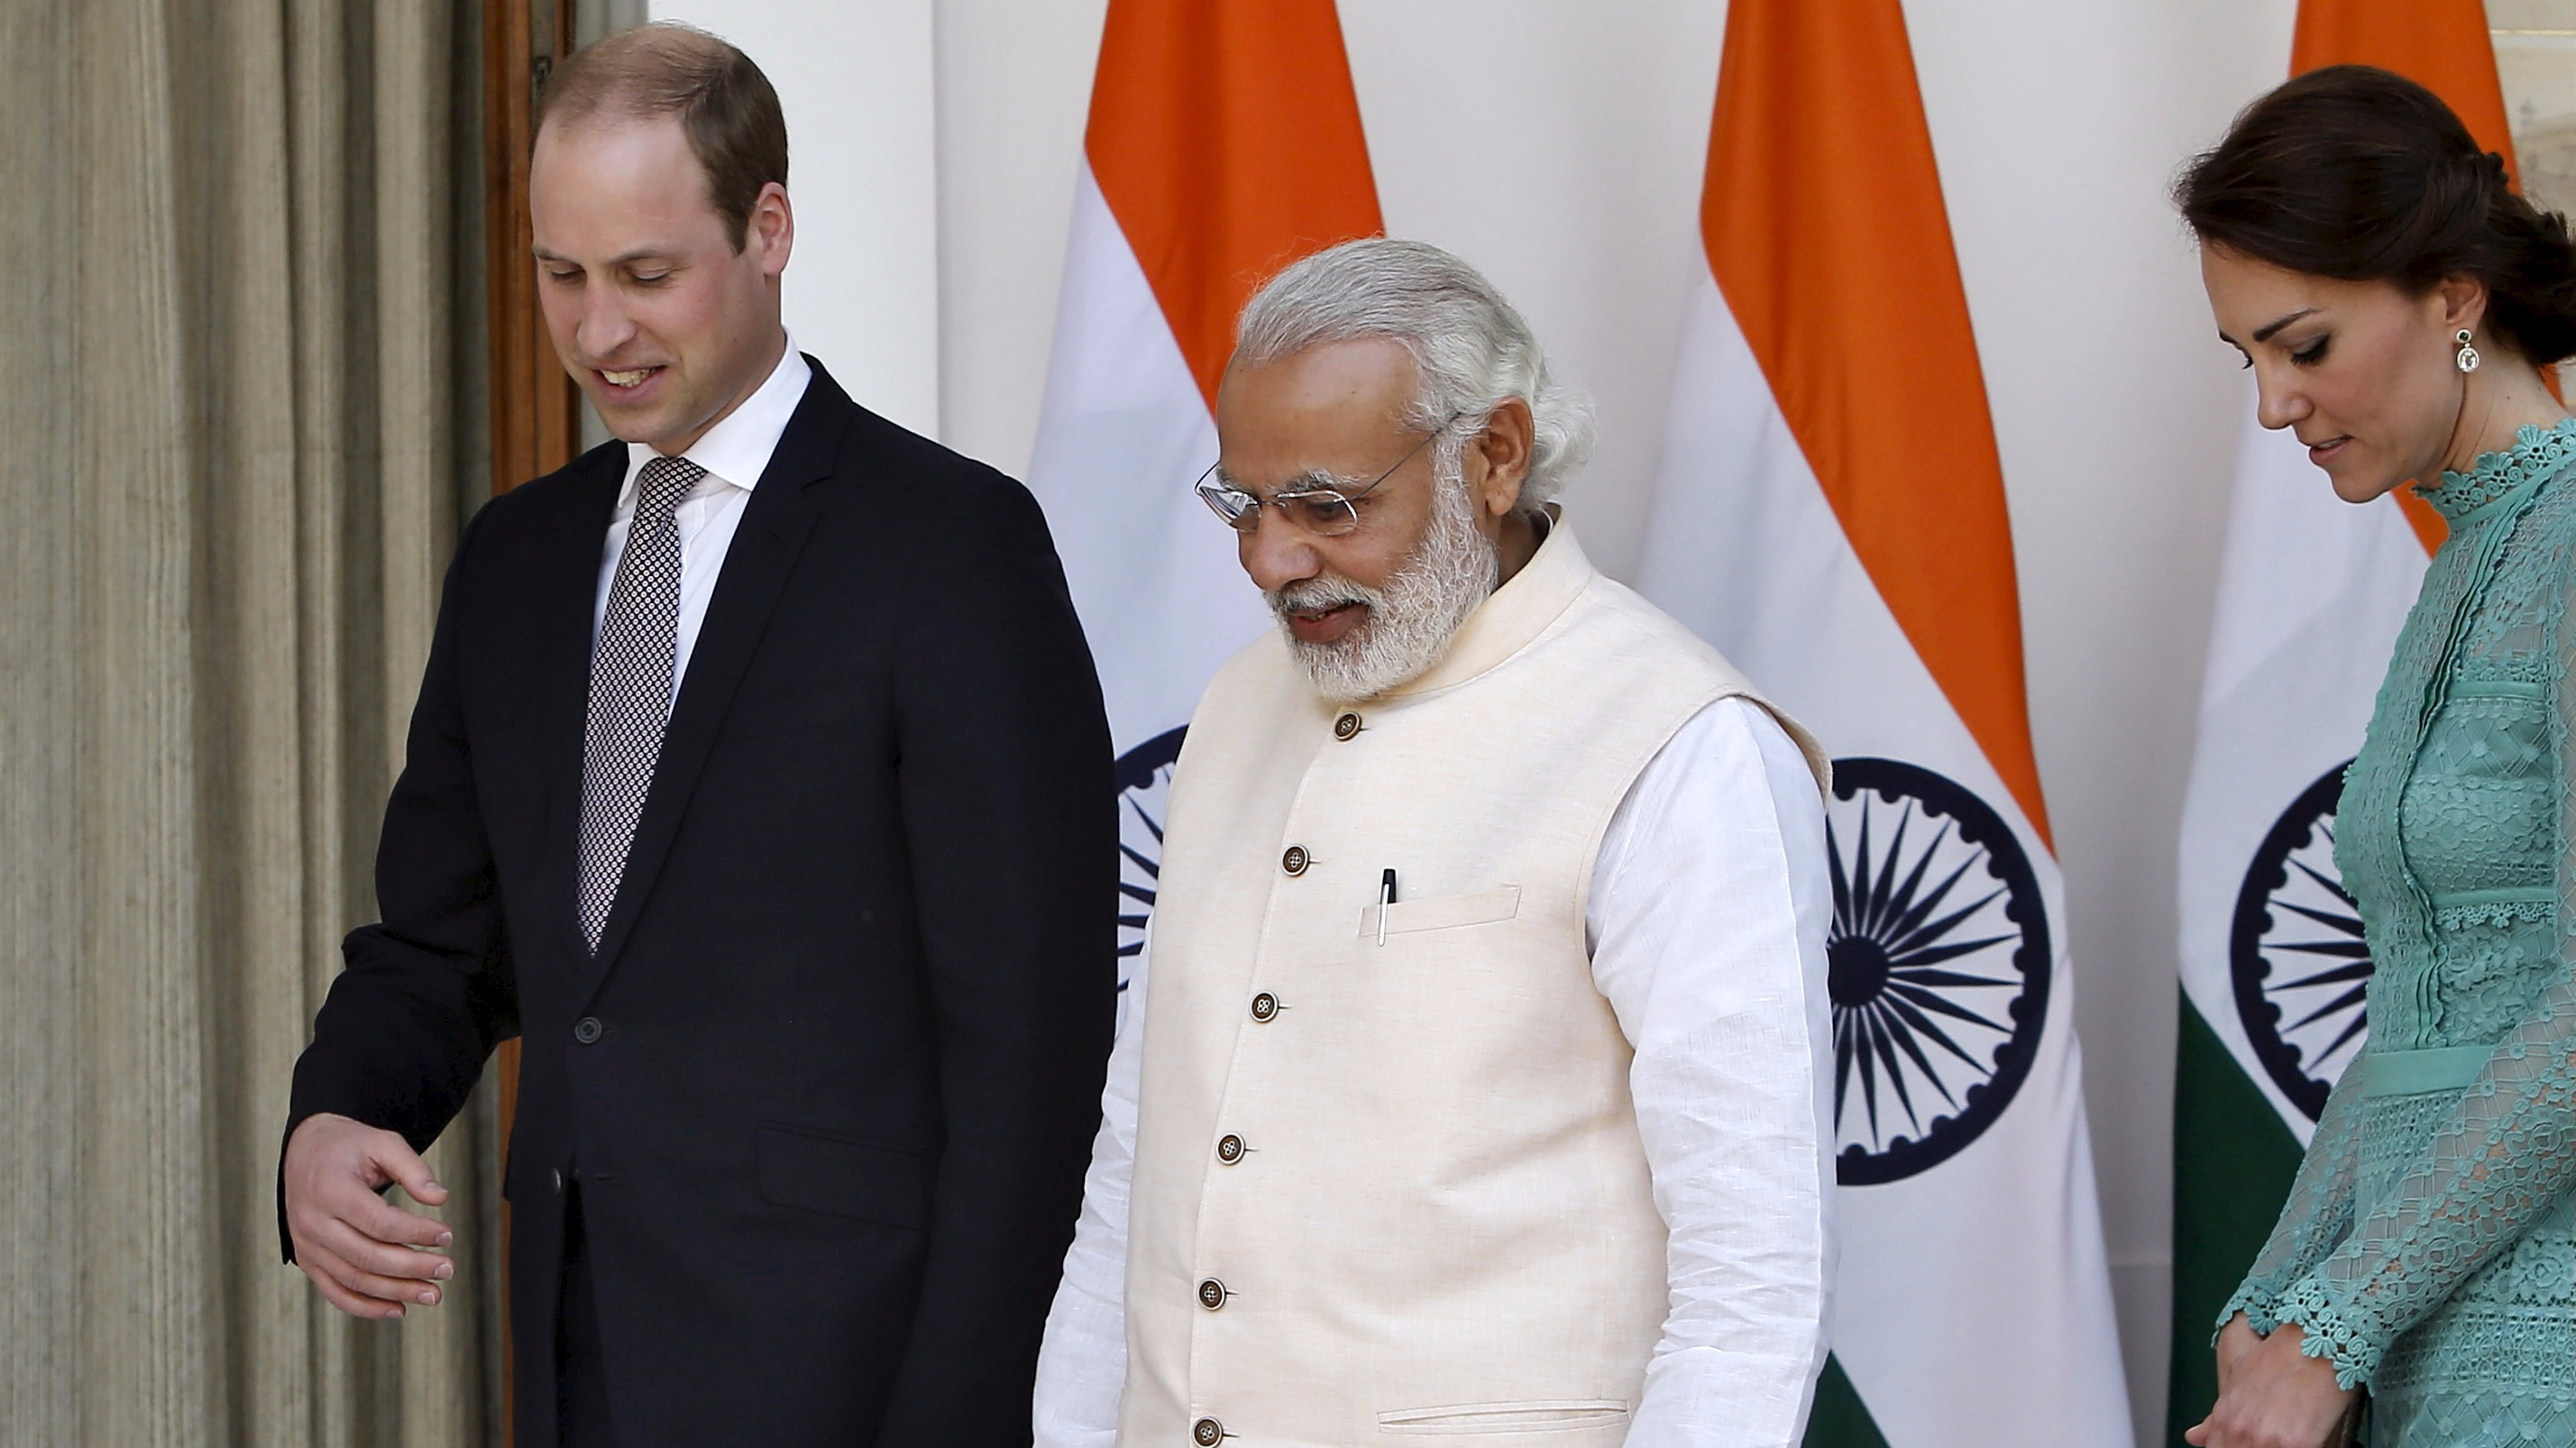 Prince William talks steel with Indian PM during visit